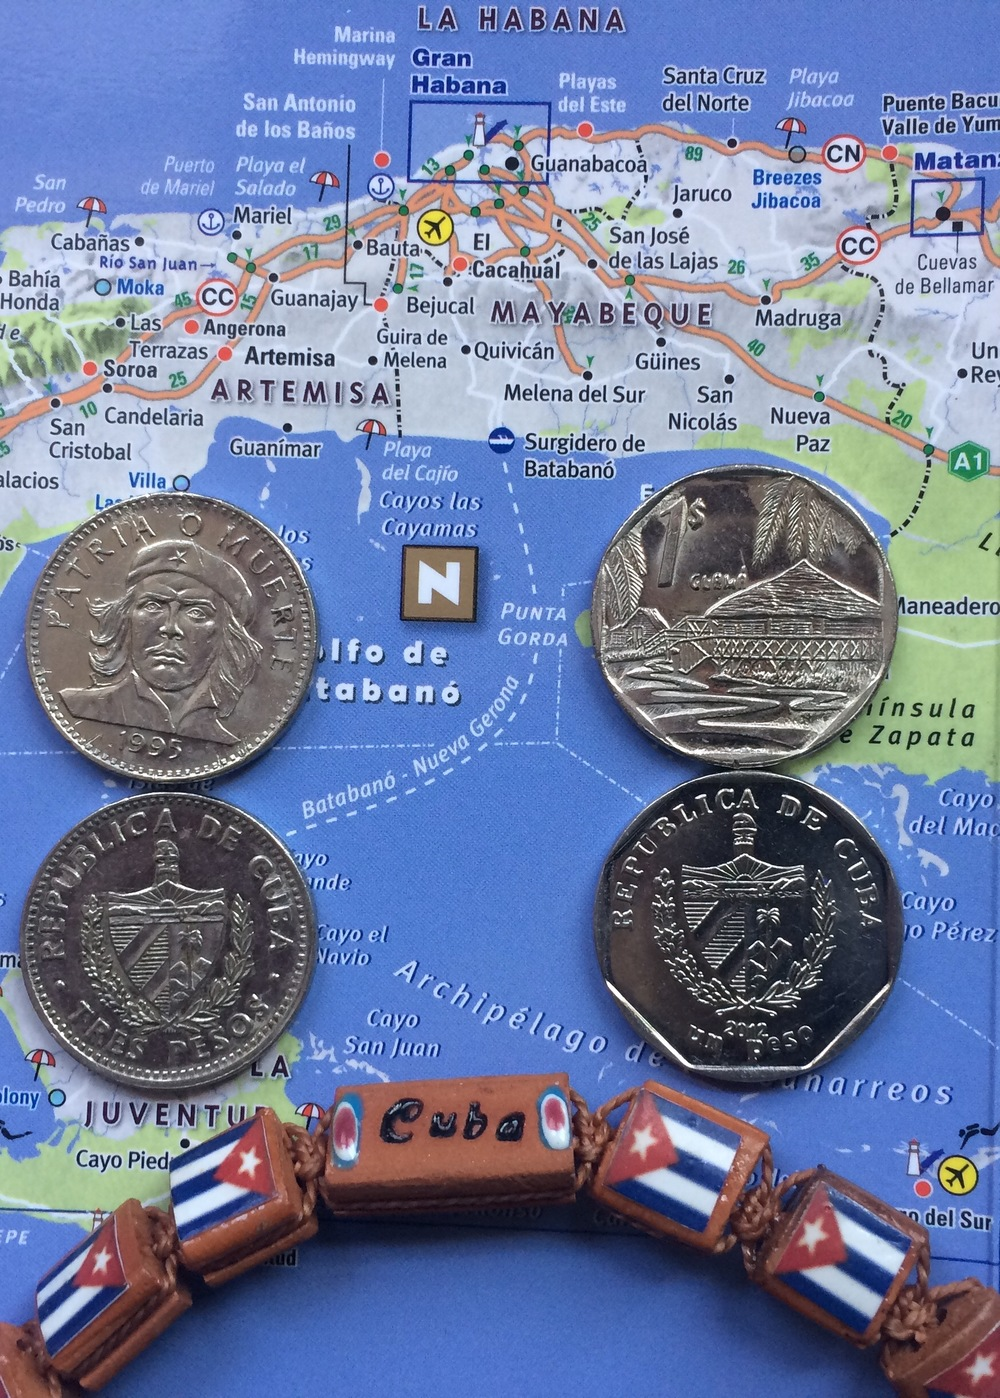 The Che 3 Peso (CUP) coin on the left; the 1 CUC coin on the right